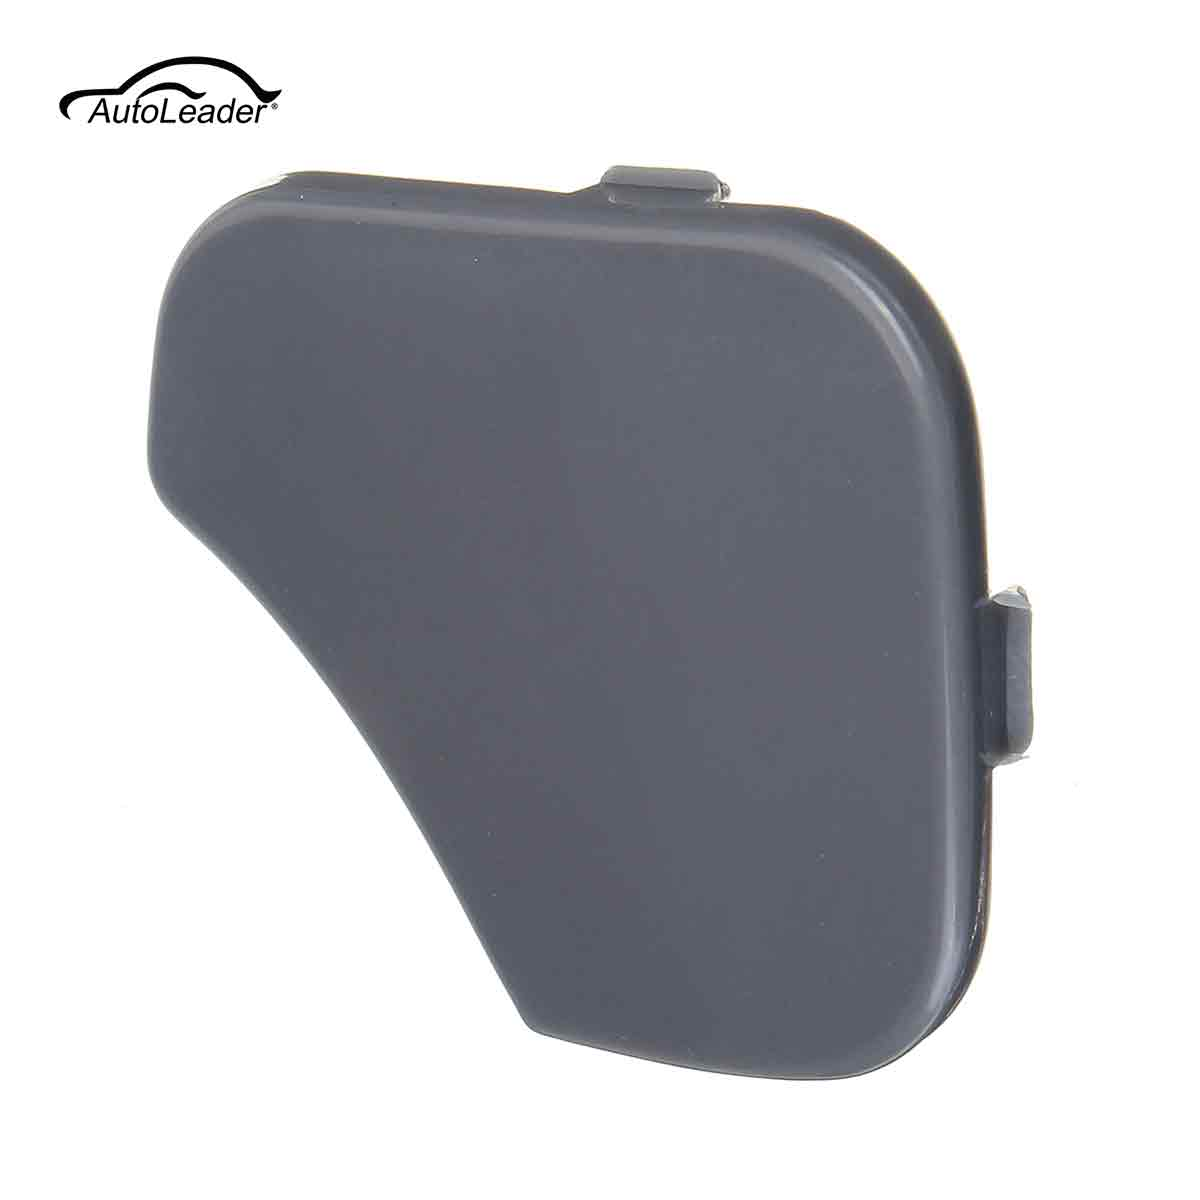 Gray ABS Front Bumper Tow Hook Cover Cap For FORD for FIESTA MK6 2005 2006 2007 2008 8x6x1.5cm 1375861 6S6117A989AA 1piece image